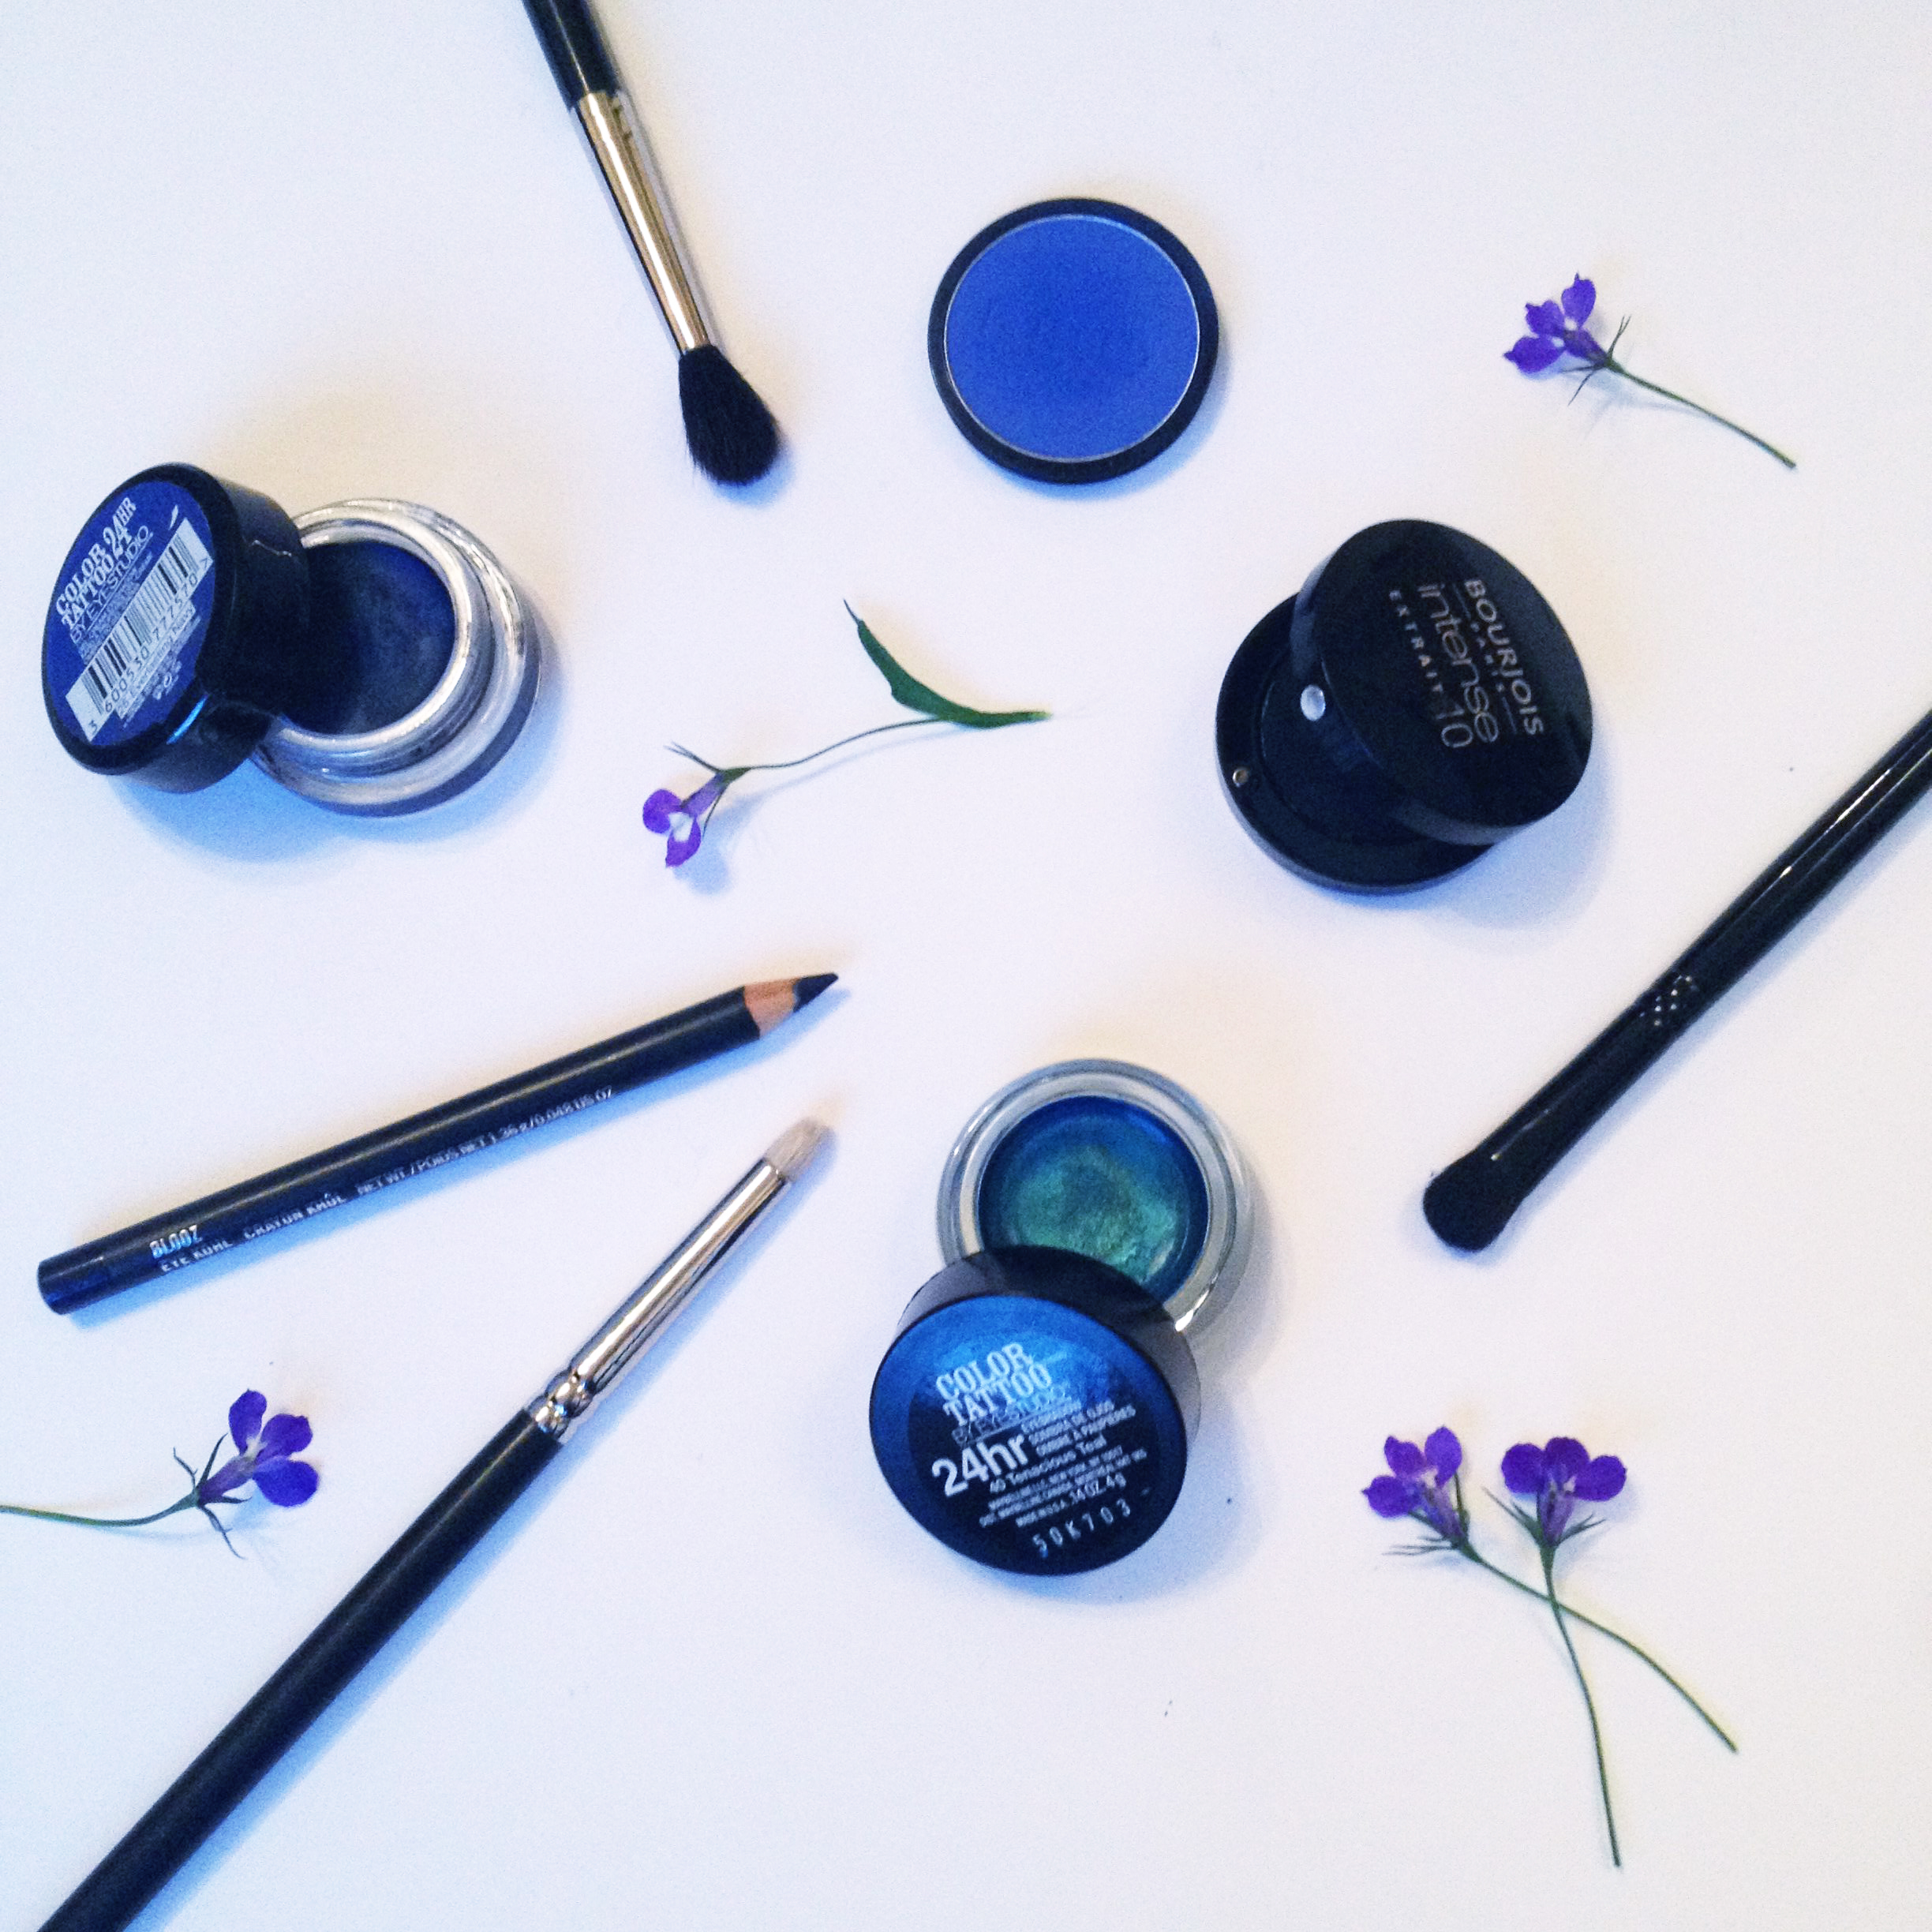 The products used.